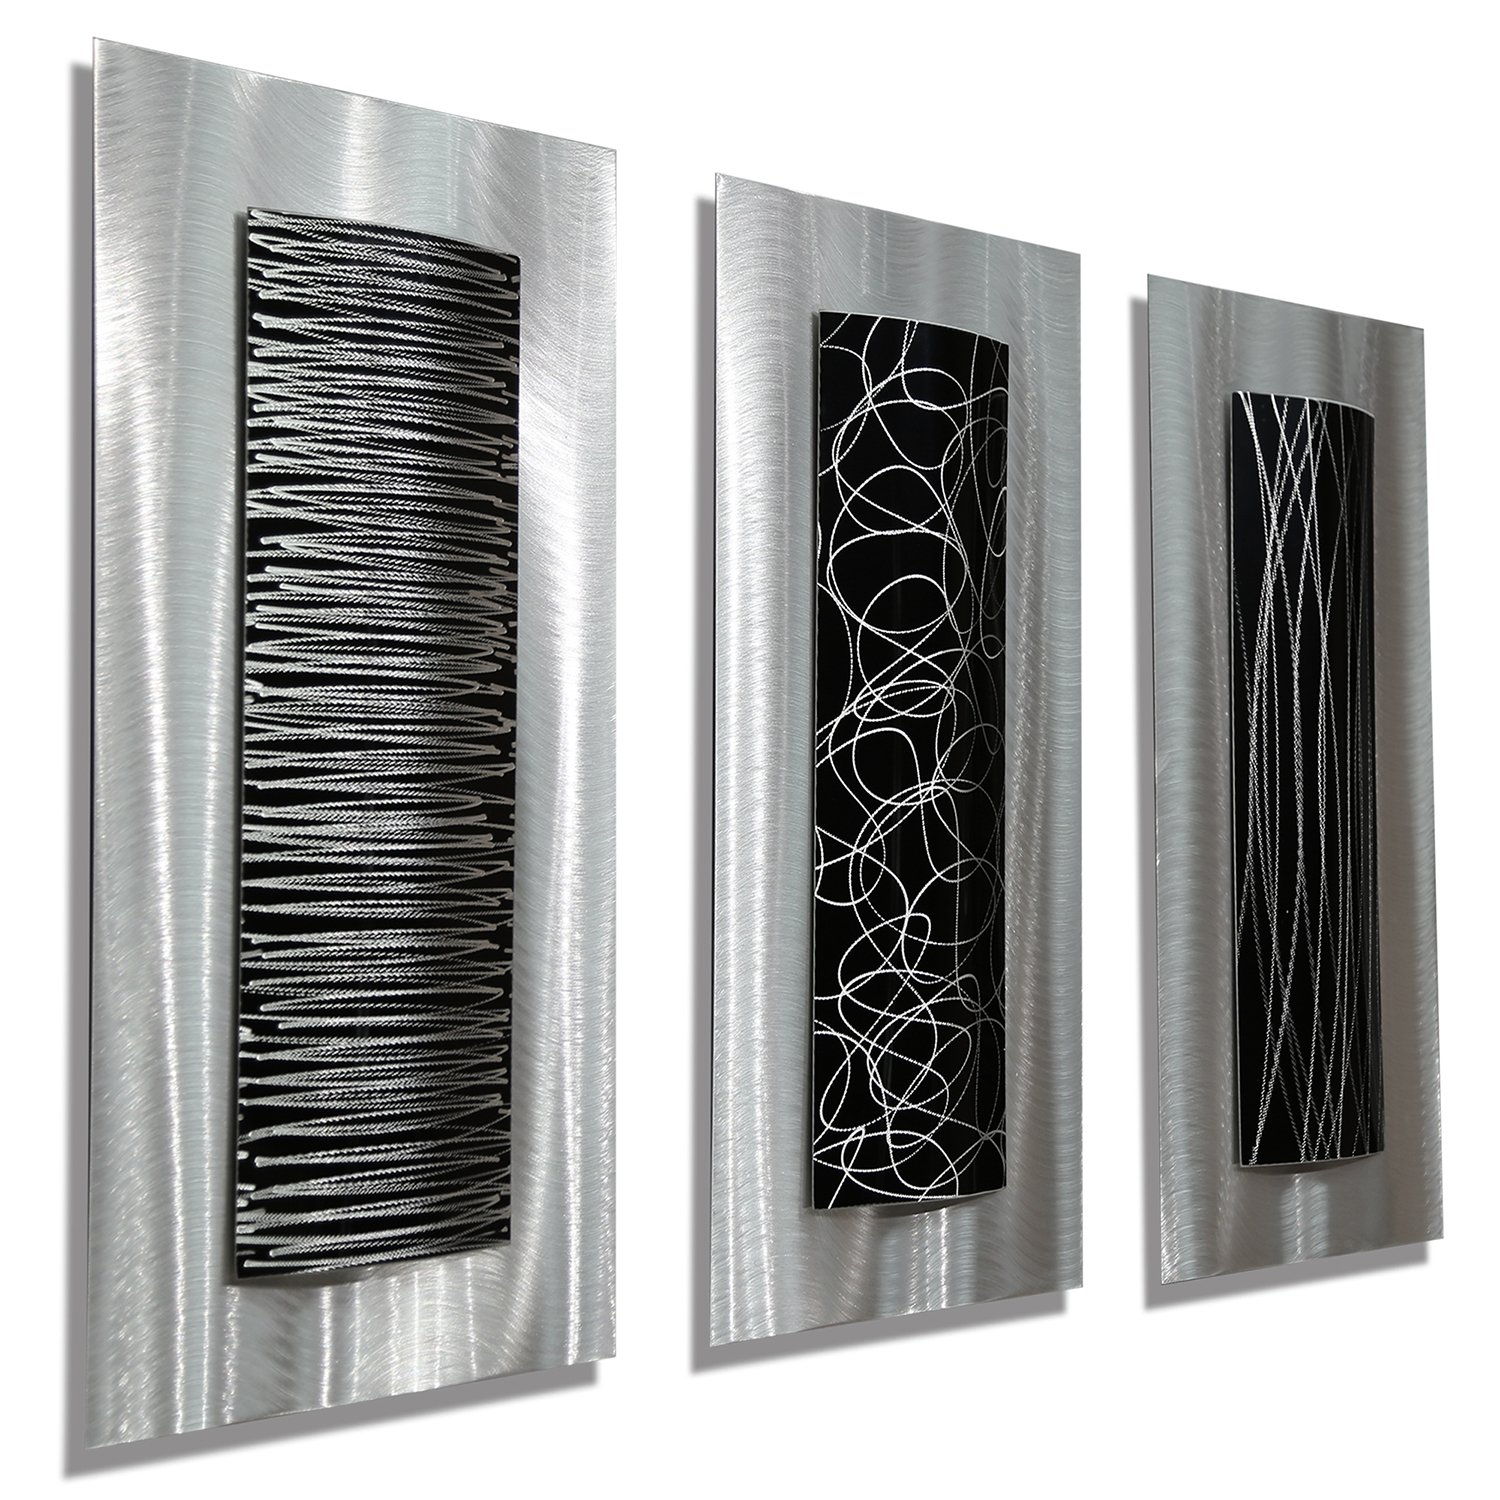 Abstract metal wall art panels beautiful and elegant - Contemporary wall art decor ...